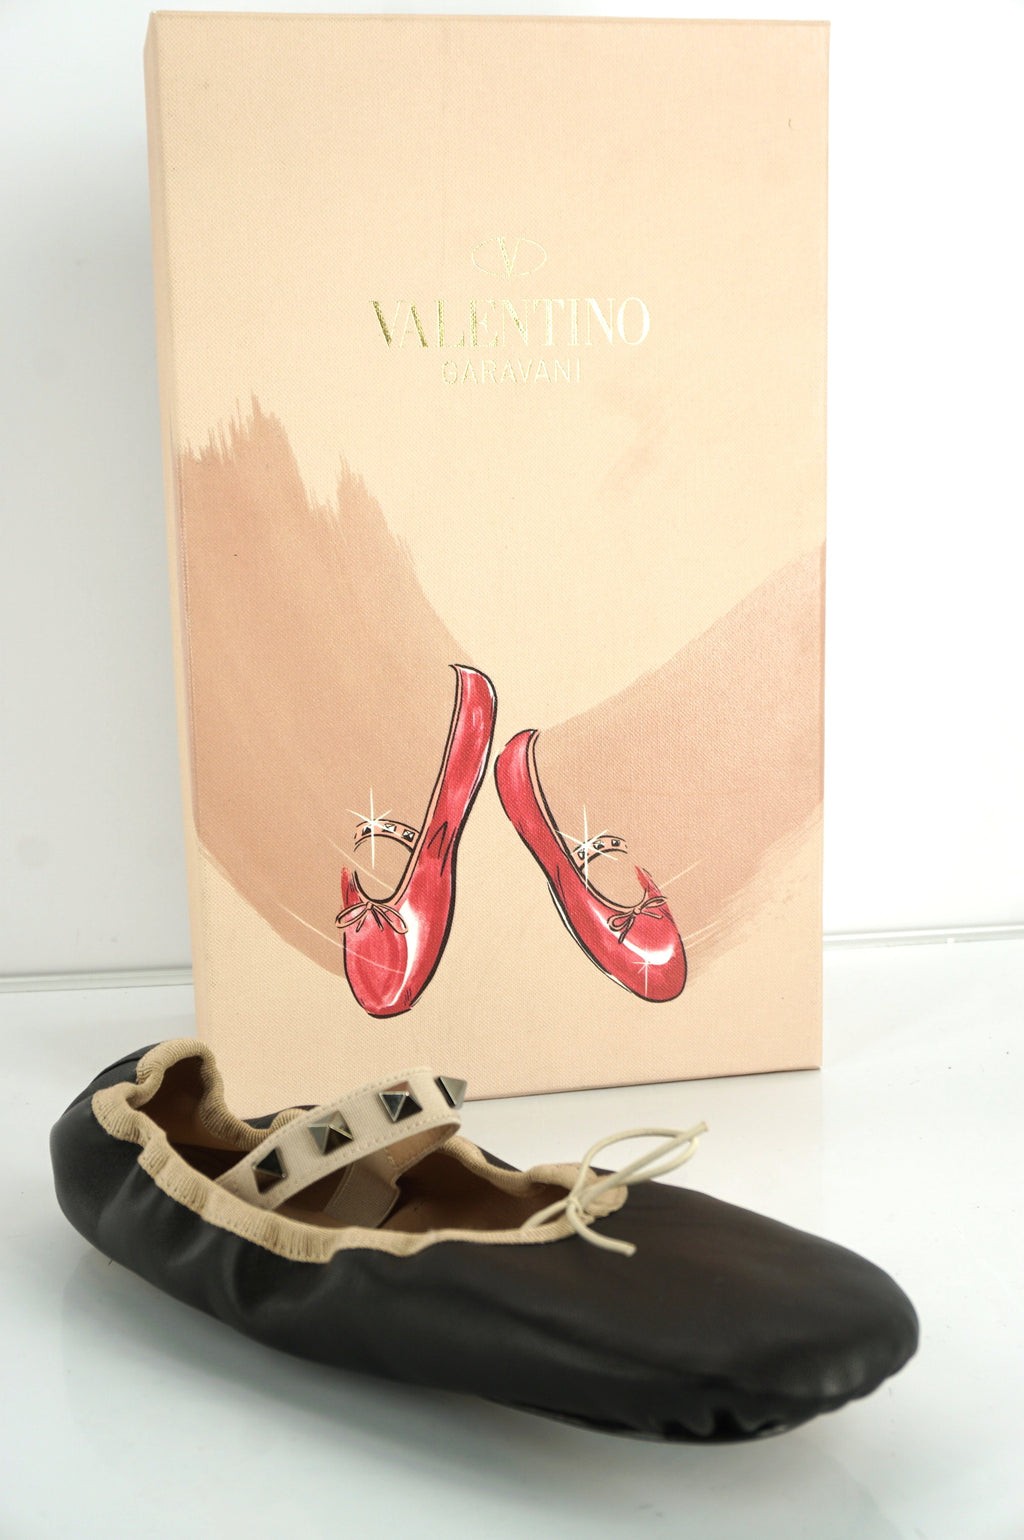 Valentino Rockstud Mary Jane Slipper Ballet Flats Size Medium Leather NIB